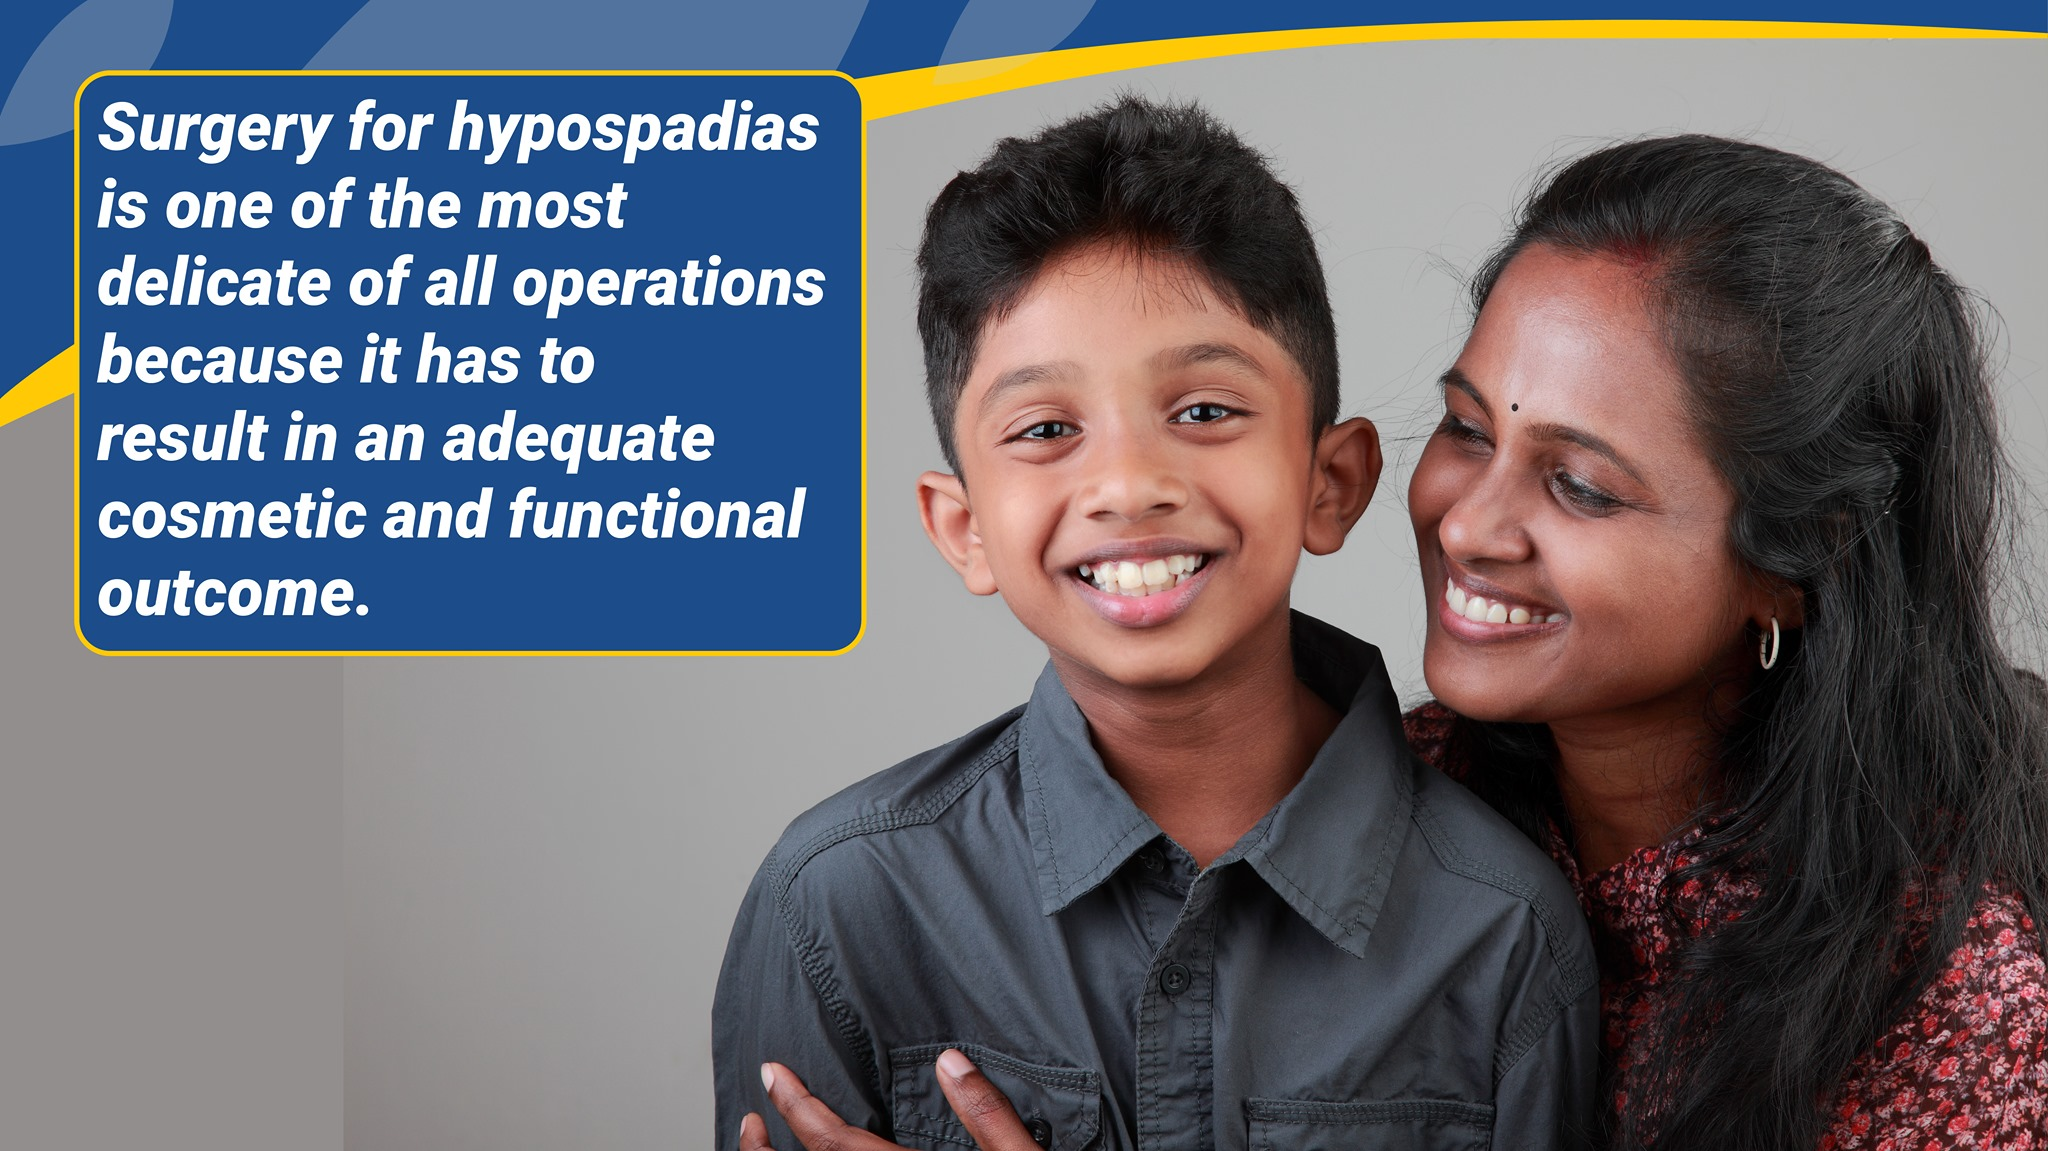 Surgery for hypospadias is one of the most delicate of all operations because it has to result in an adequate cosmetic and functional outcome